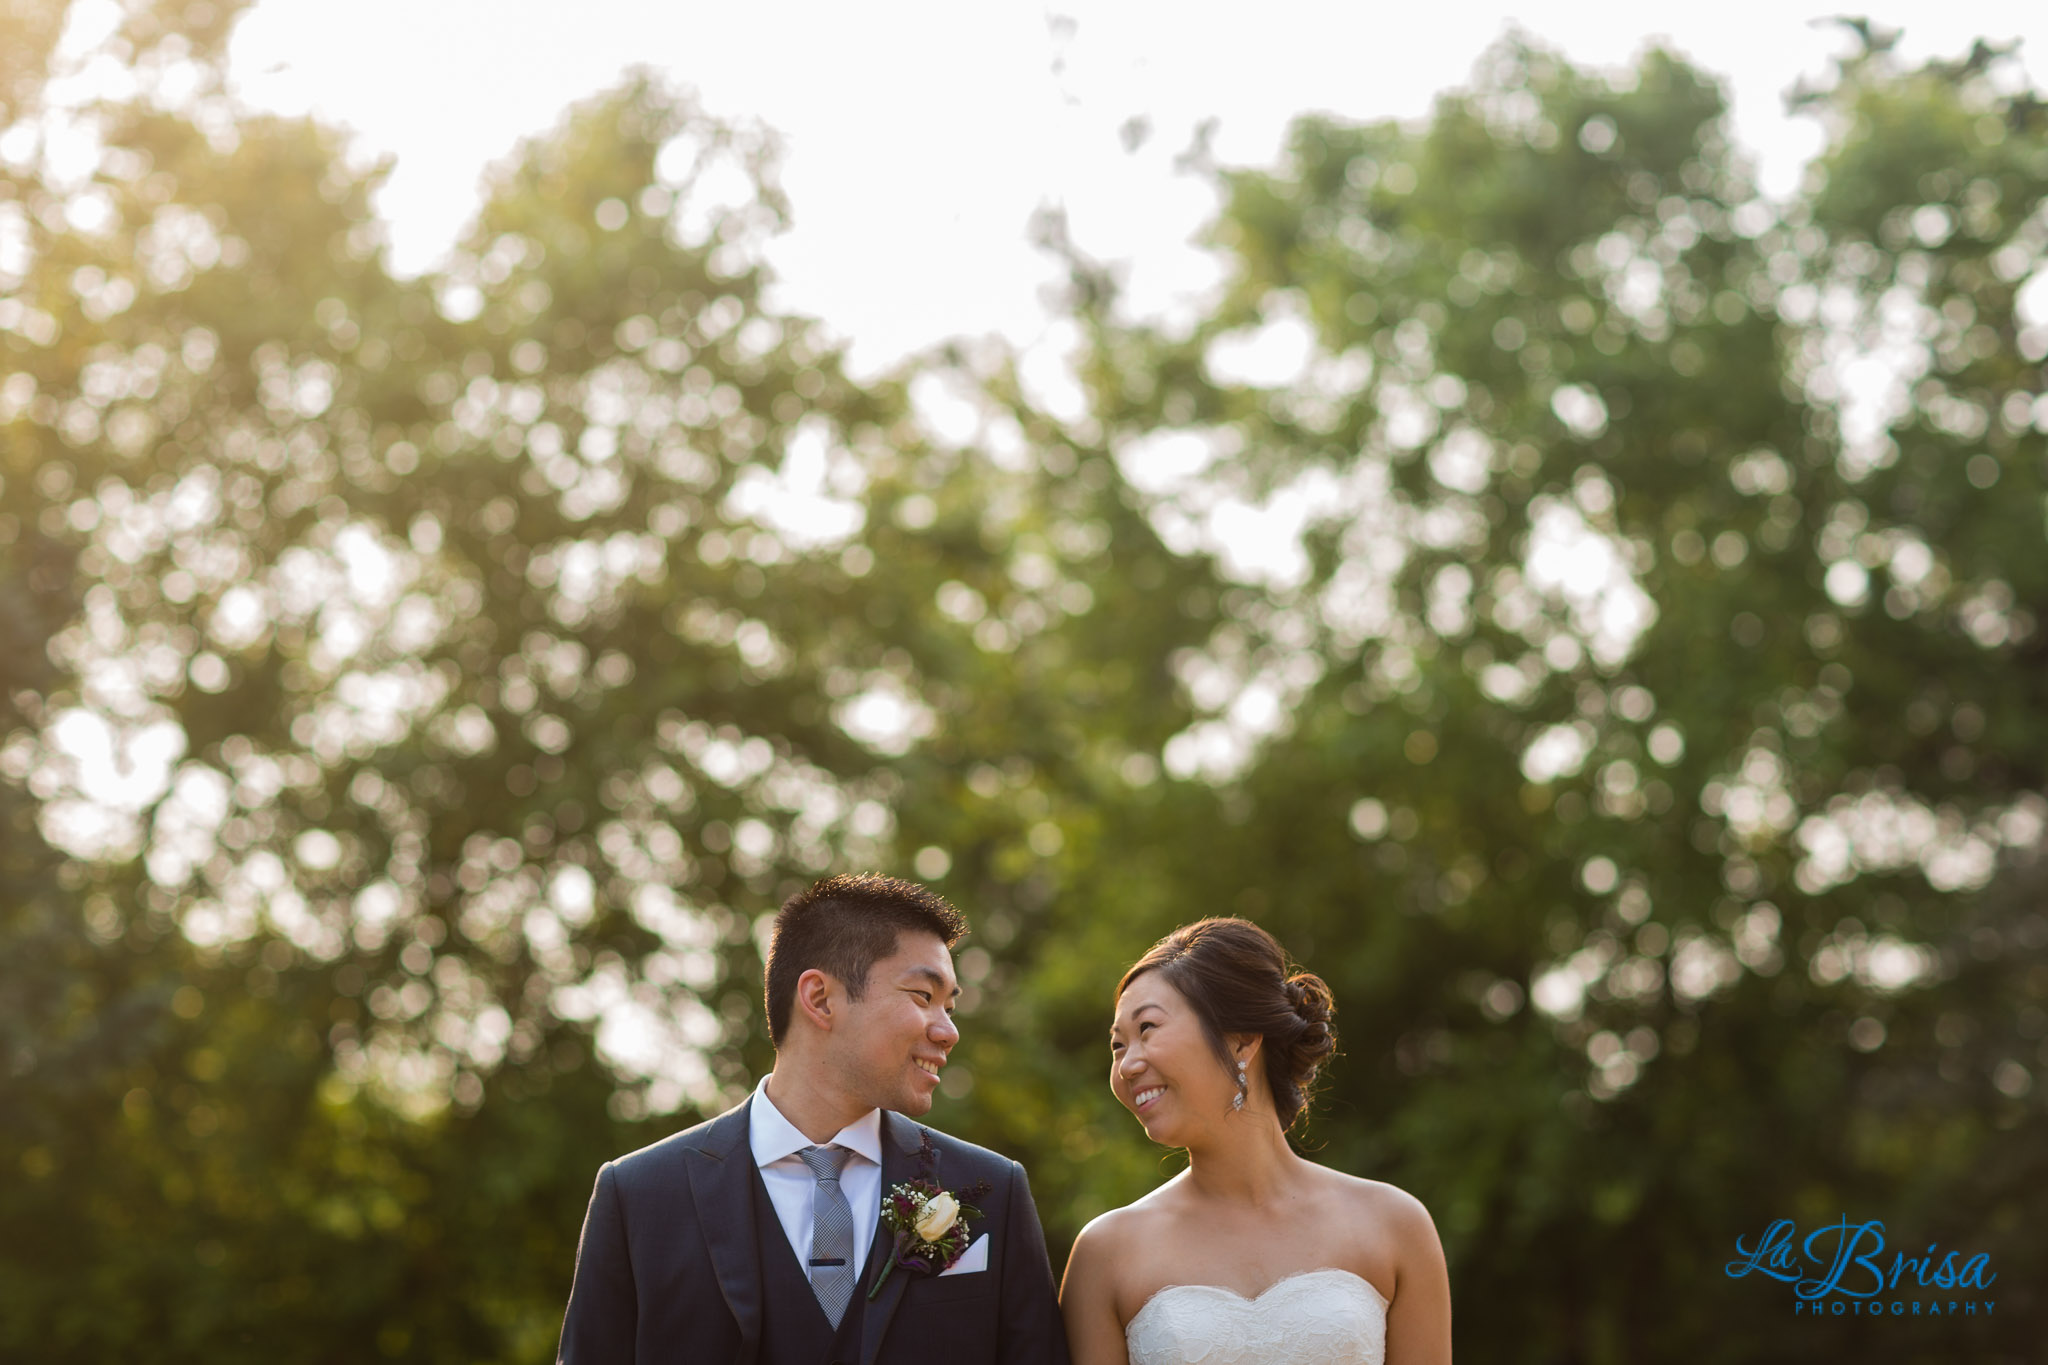 Sharon Frank Preview Wedding Photography Naperville Il Chris Hsieh